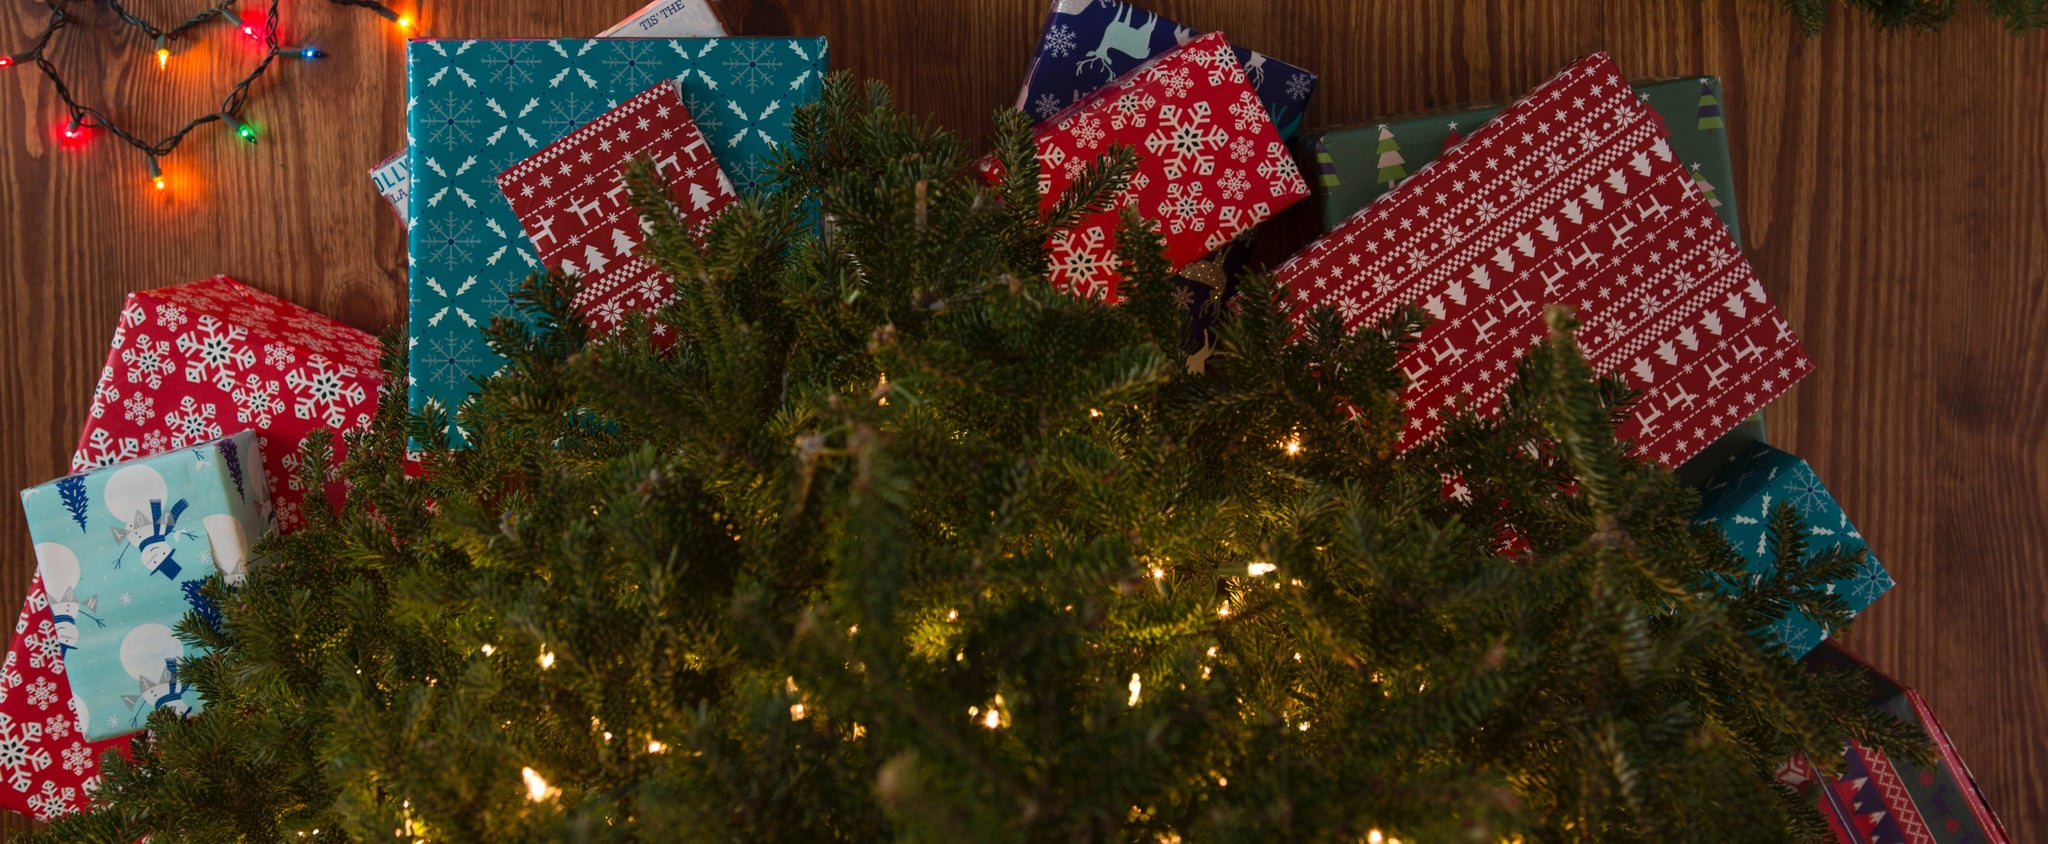 Best Holiday Gifts For Grandparents